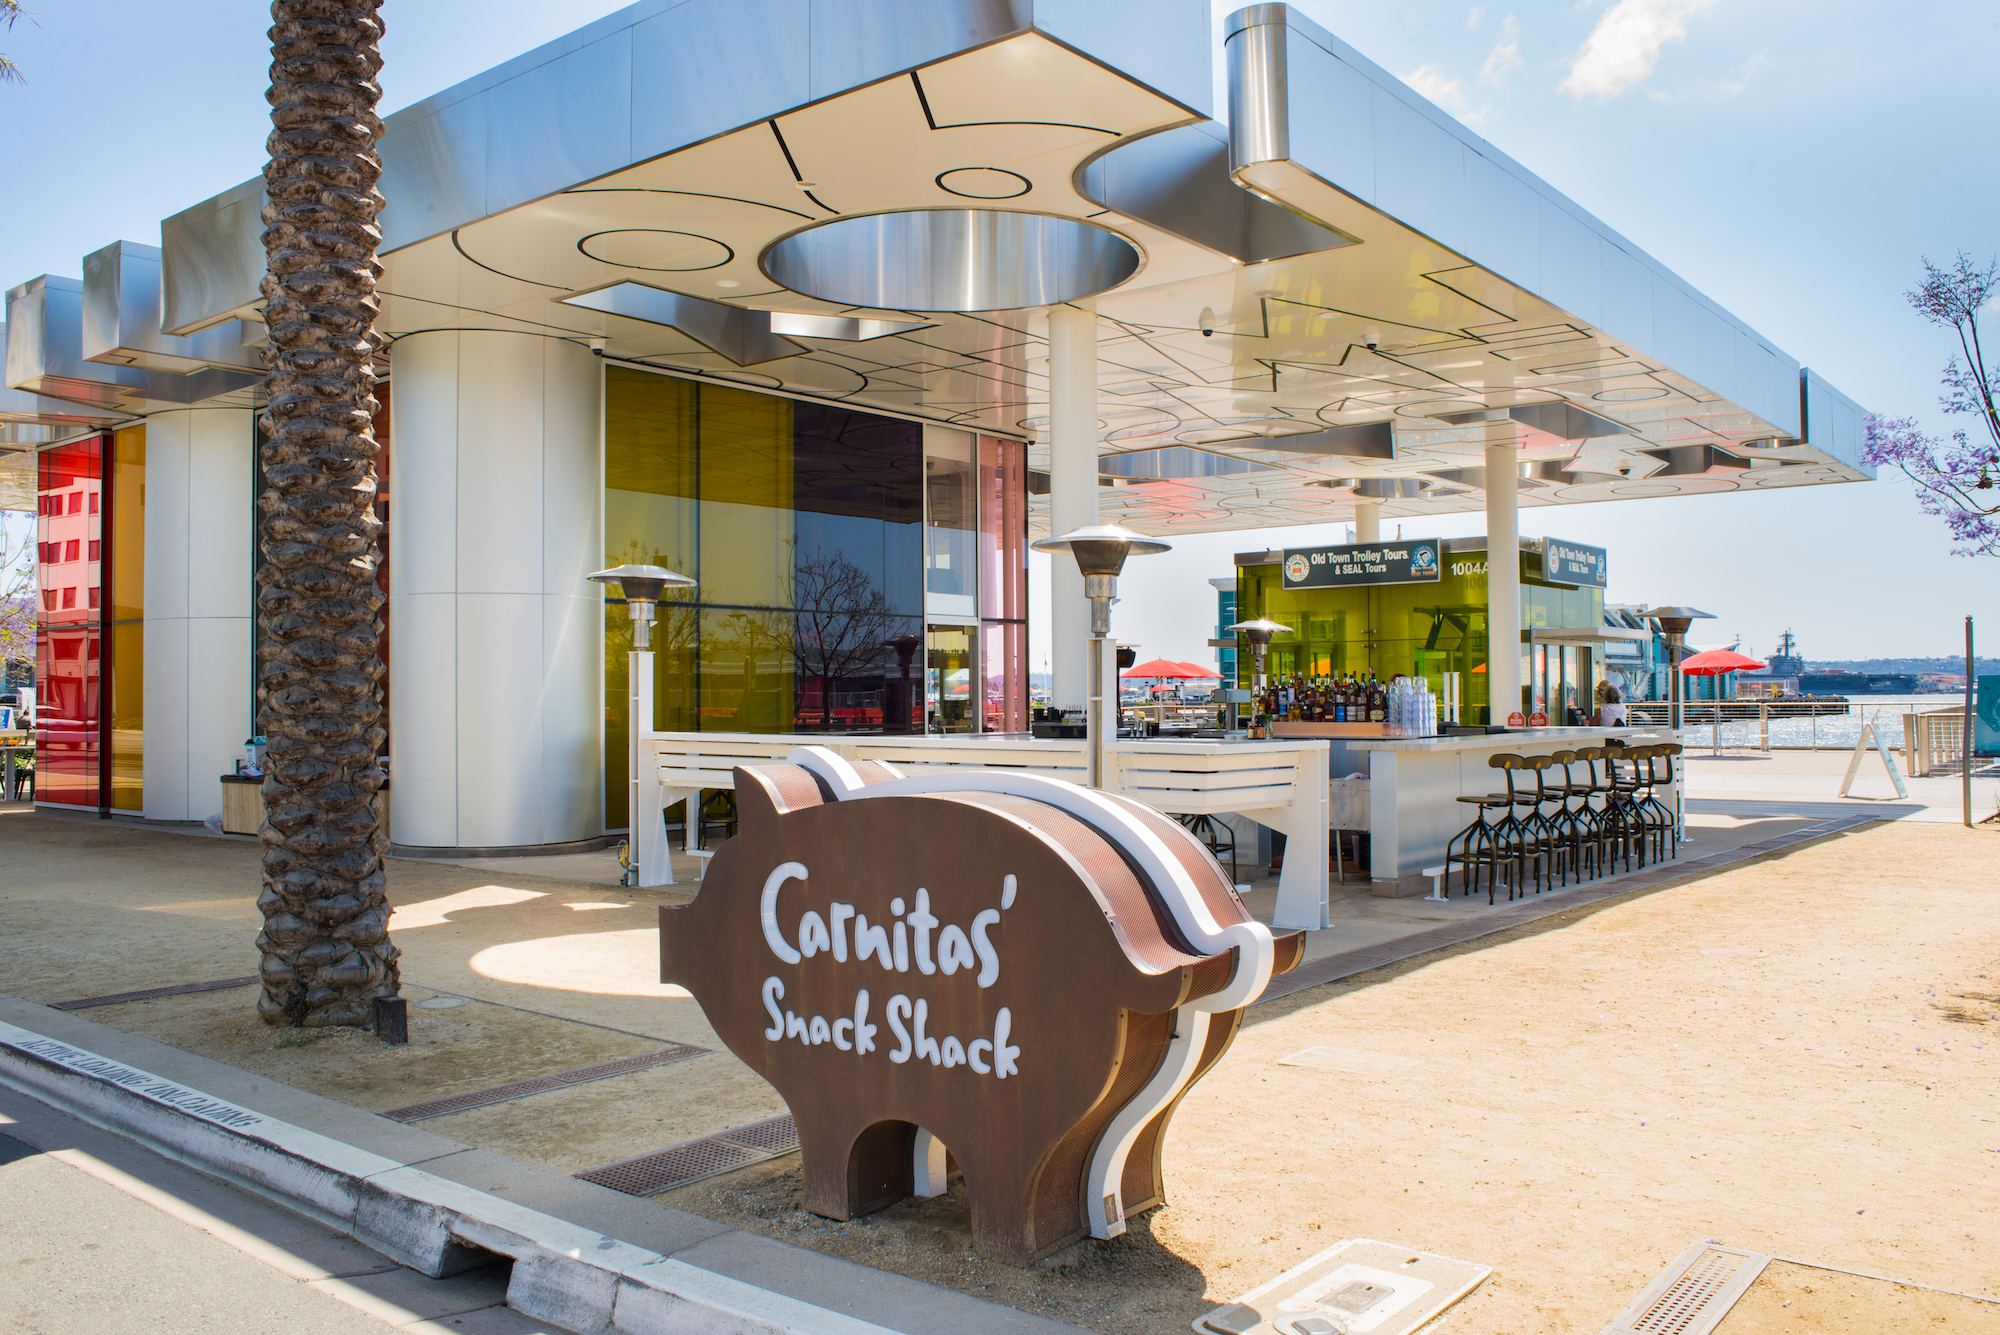 Carnita's Snack Shack